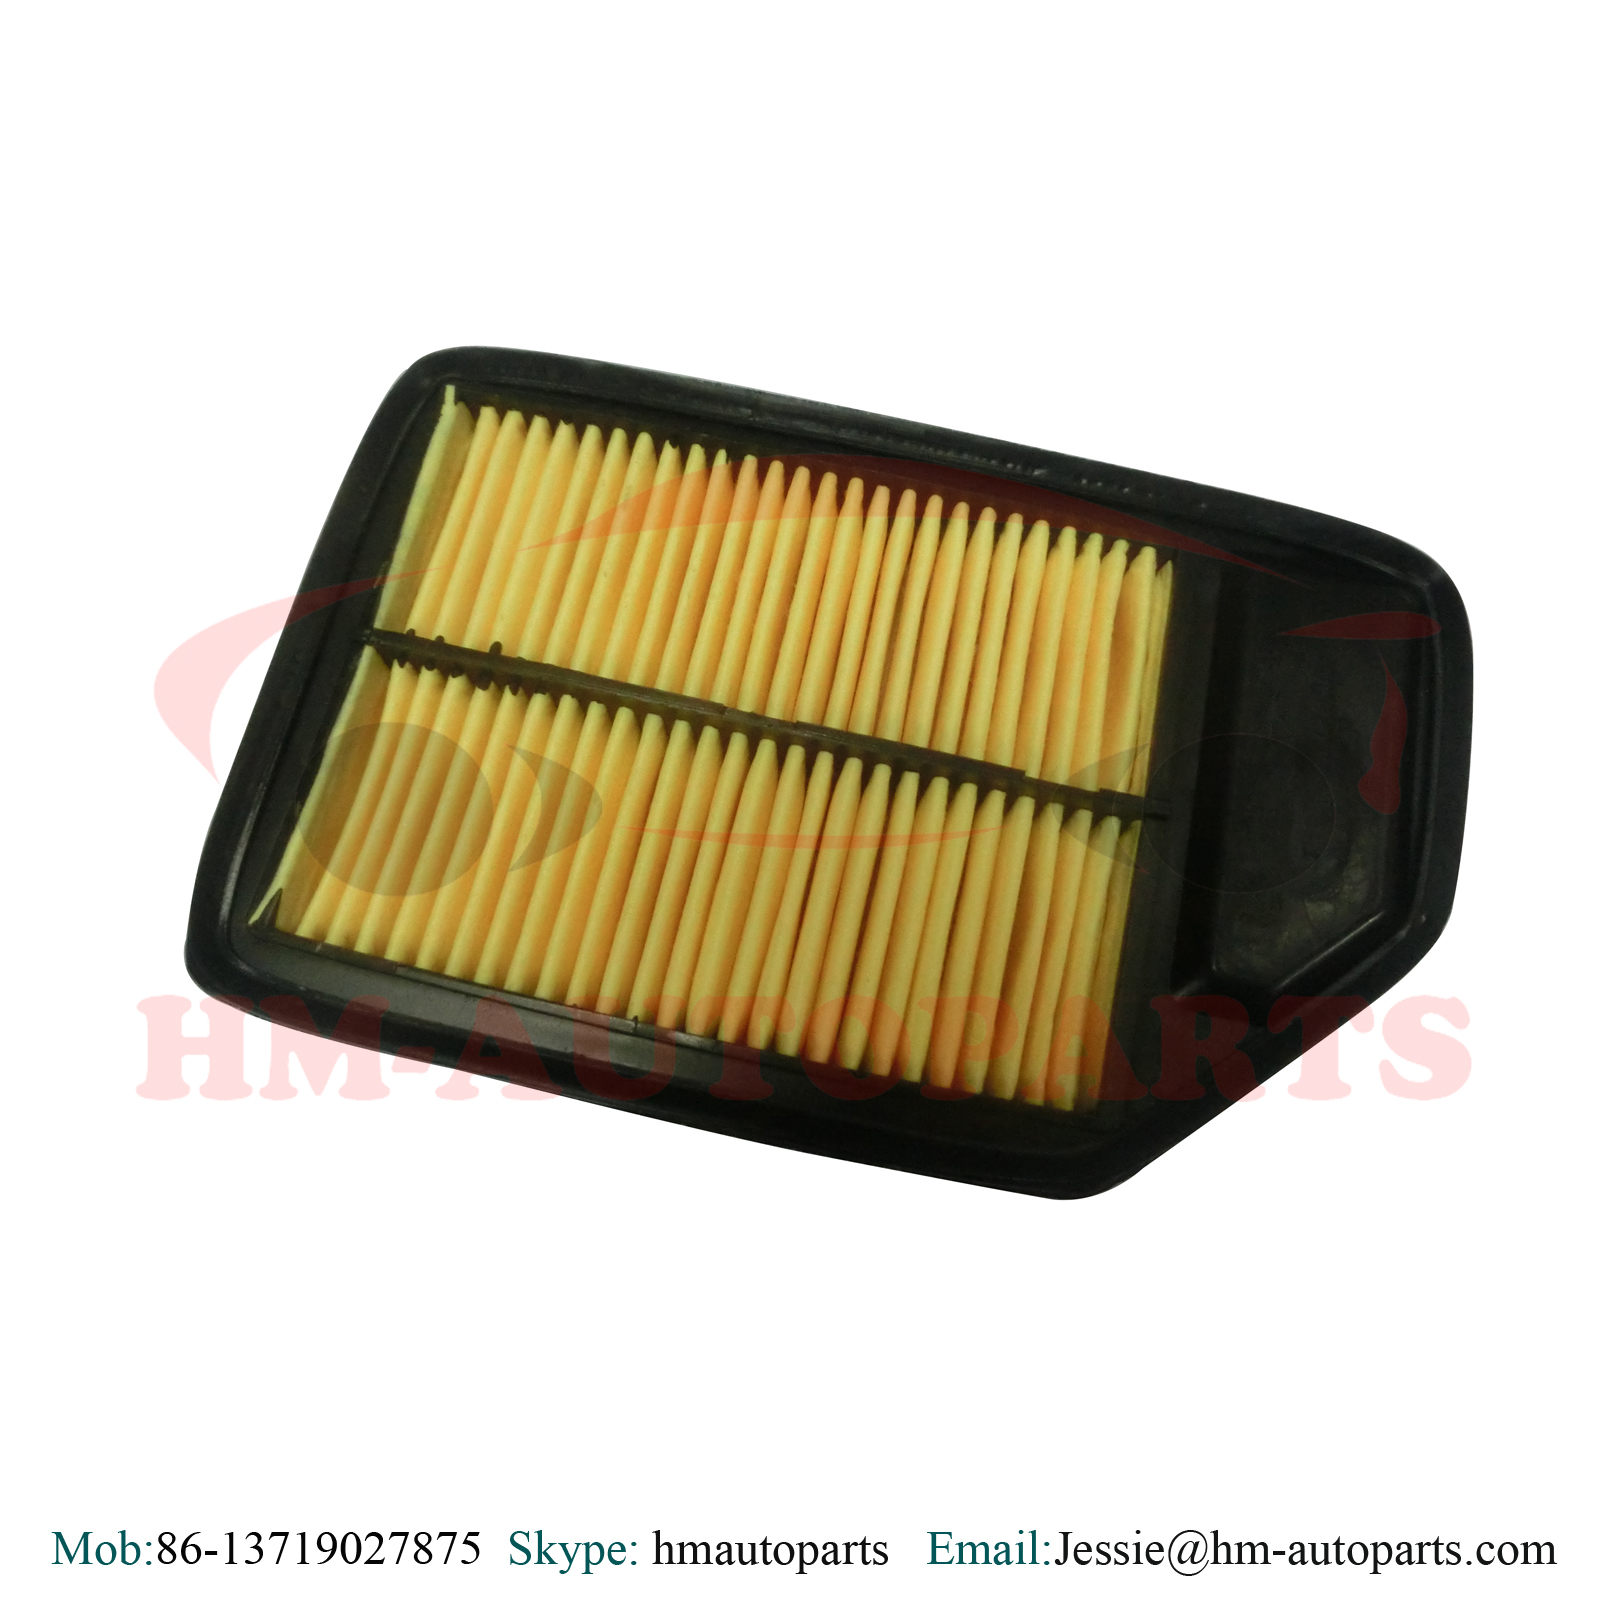 Engine Air Filter 17220-REJ-A00 for 2003-2007 Honda Accord 04-08 Acura TSX 2.4 L4